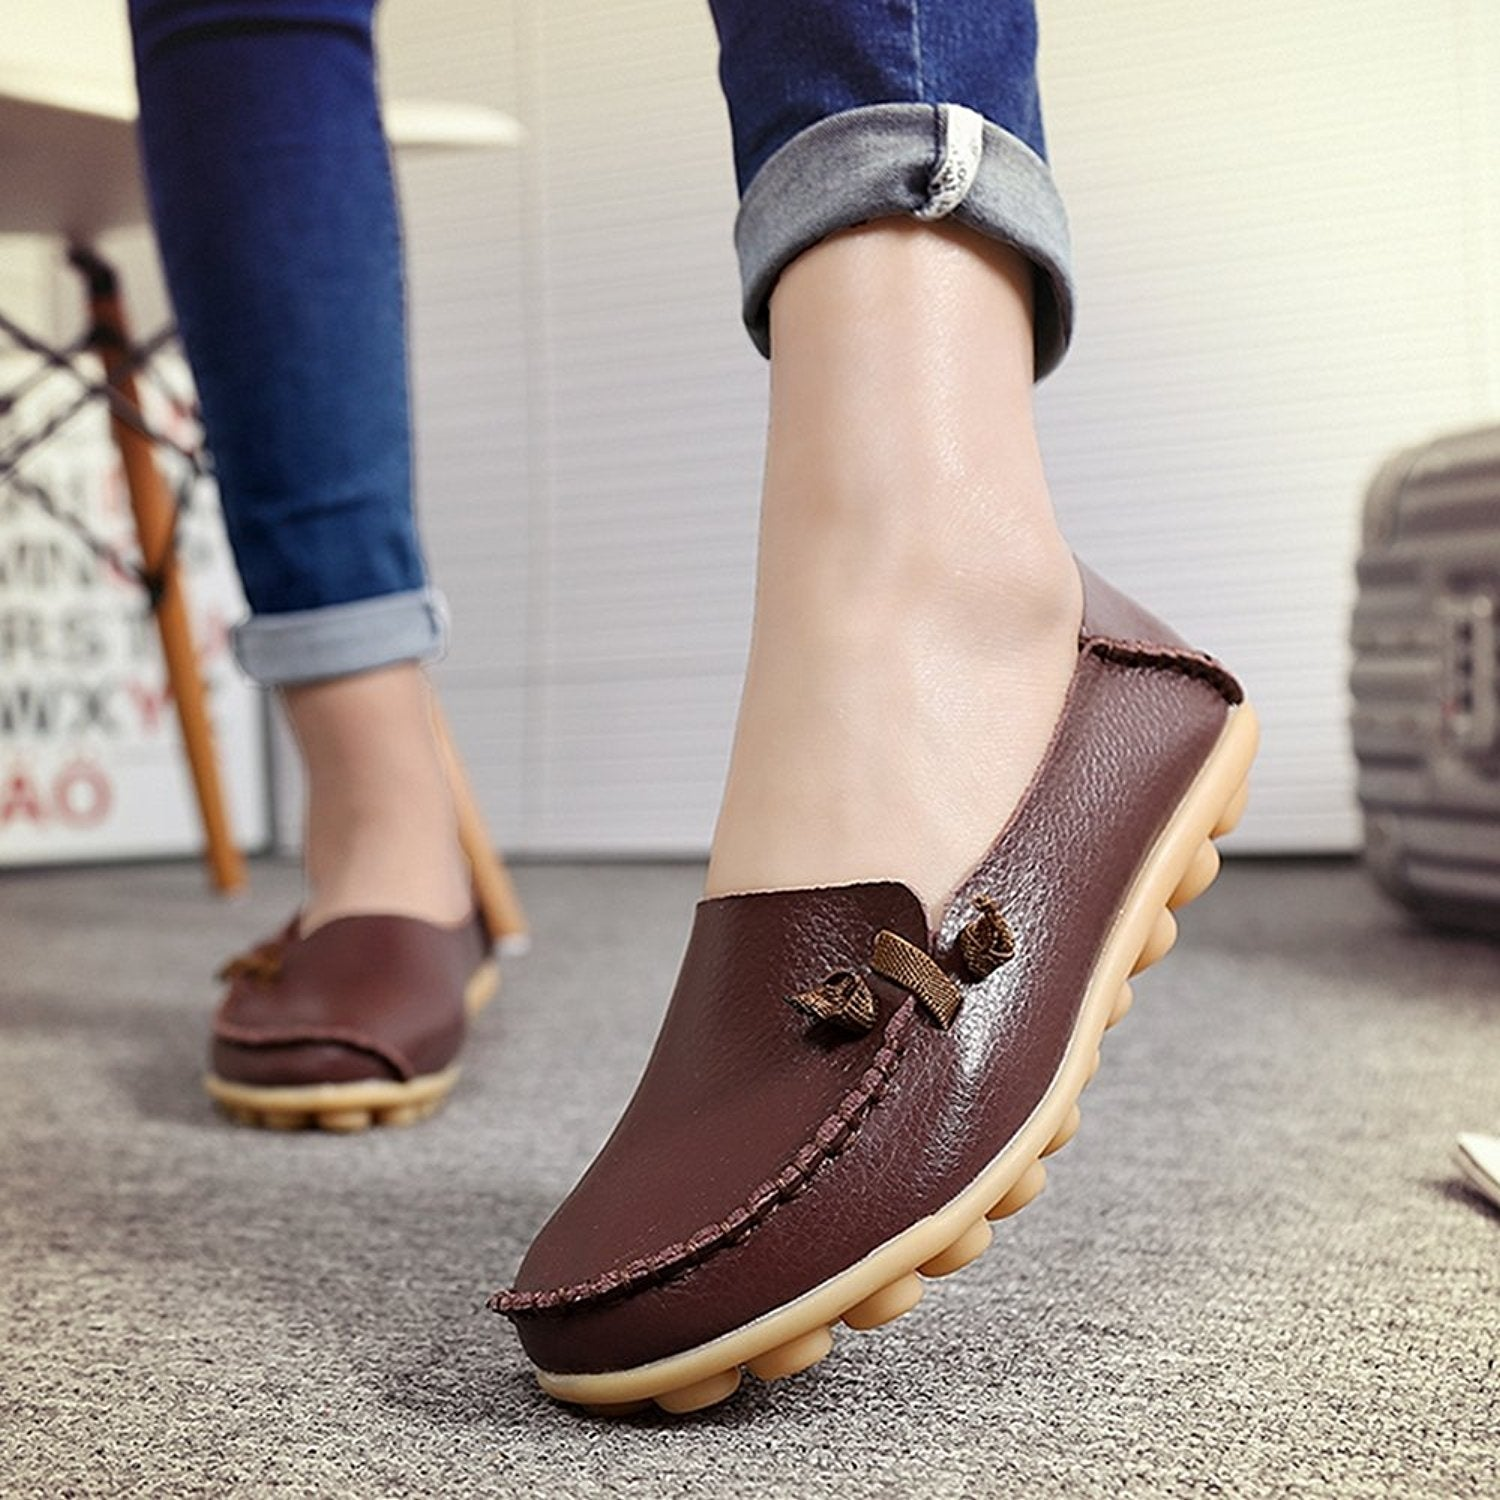 a1b12faa05009 Women LabatoStyle Women's Casual Leather Loafers Driving Moccasins Flats  Shoes Camping & Hiking